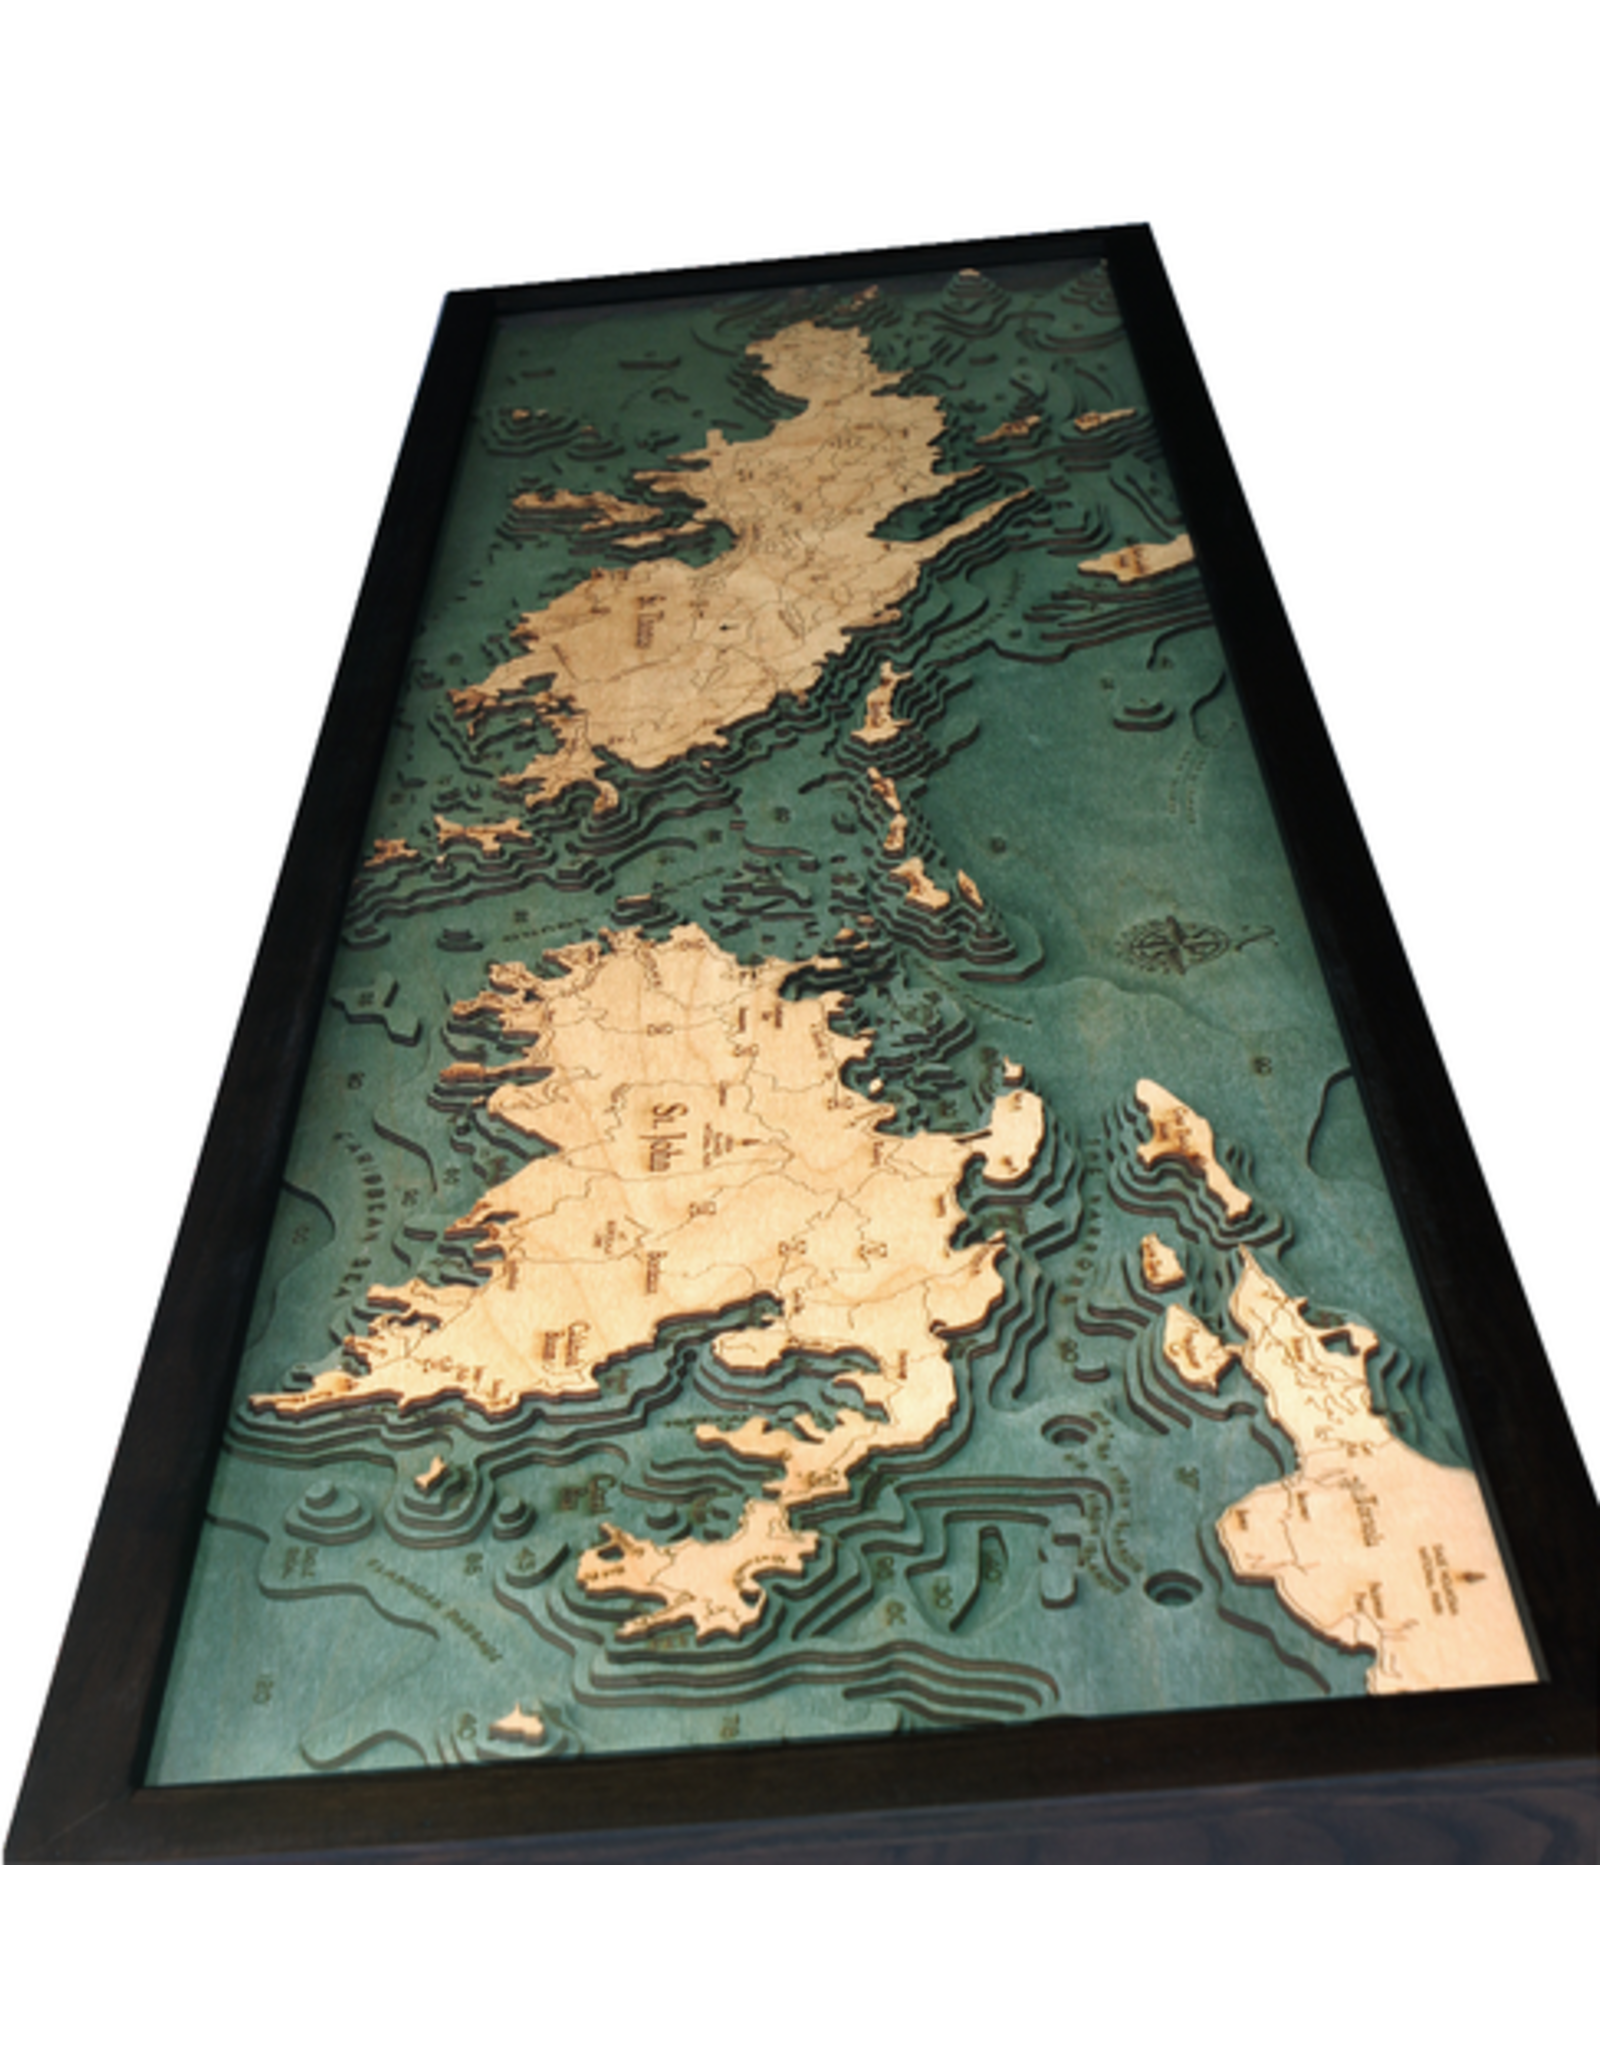 WoodCharts Virgin Islands (Bathymetric 3-D Wood Carved Nautical Chart)